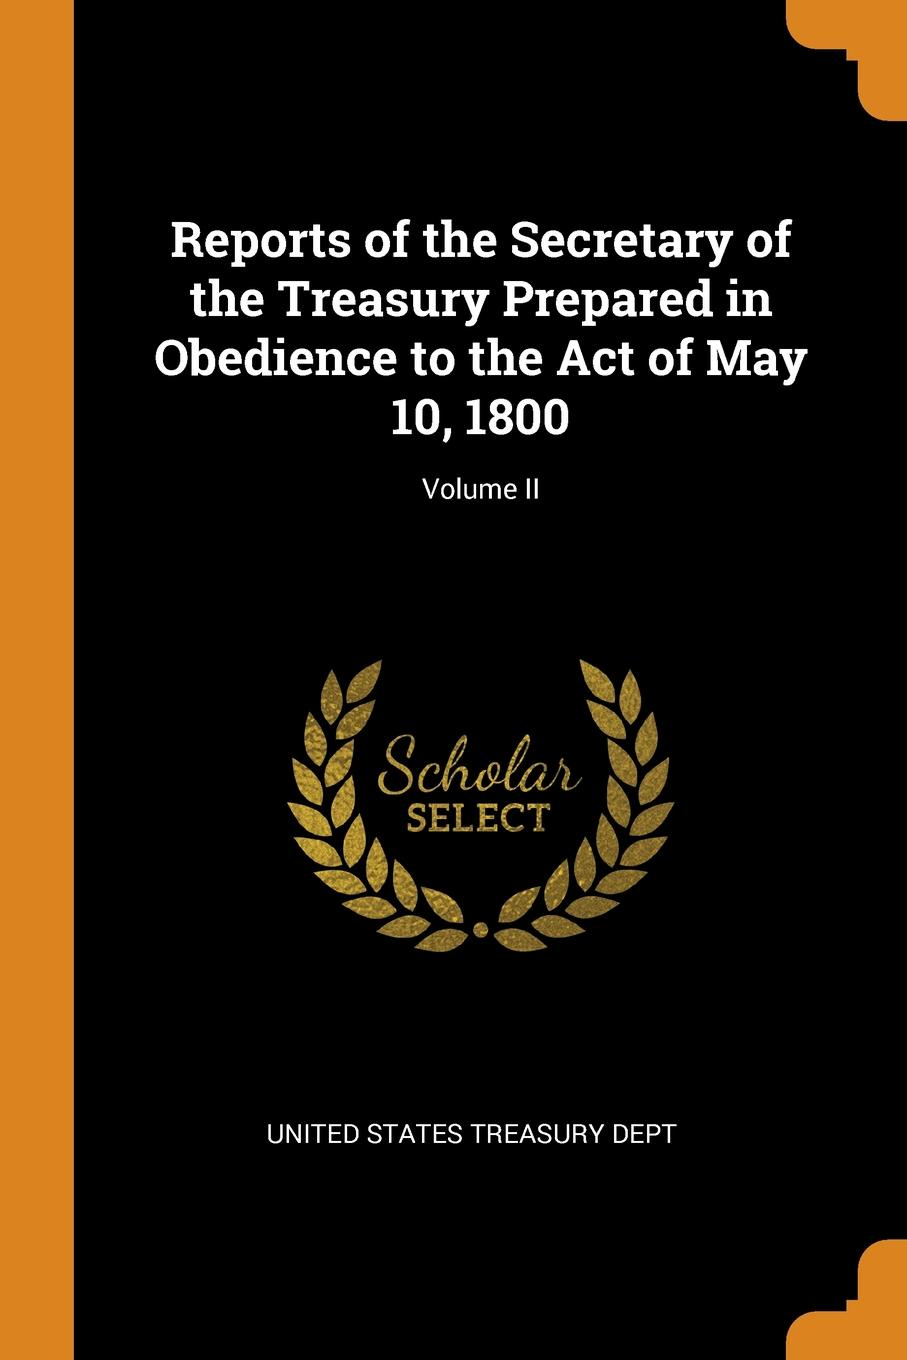 Reports of the Secretary of the Treasury Prepared in Obedience to the Act of May 10, 1800; Volume II reports of the survey botanical series volume 9